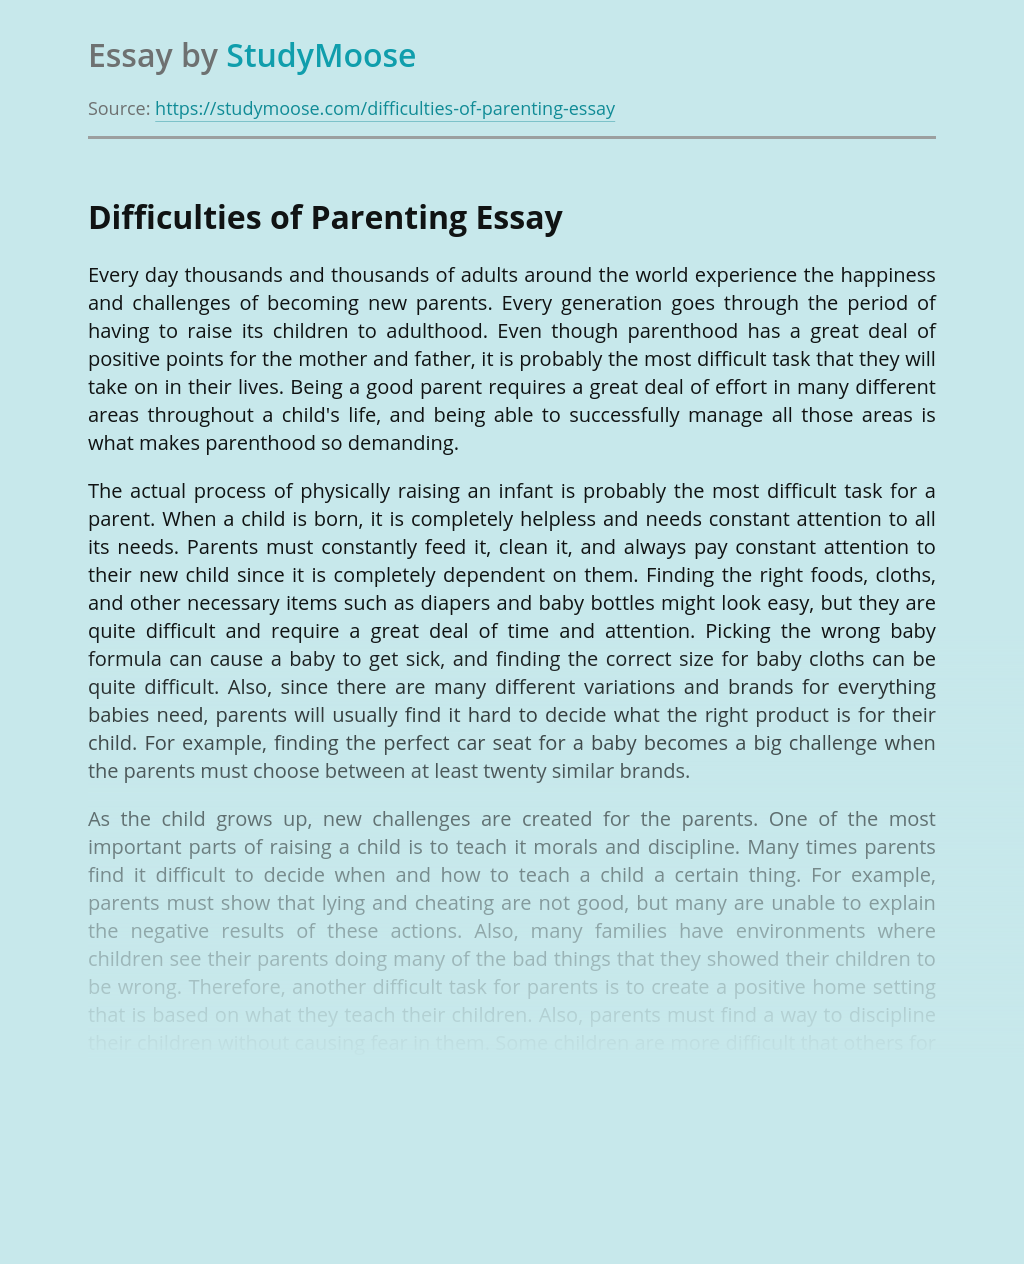 Difficulties of Parenting